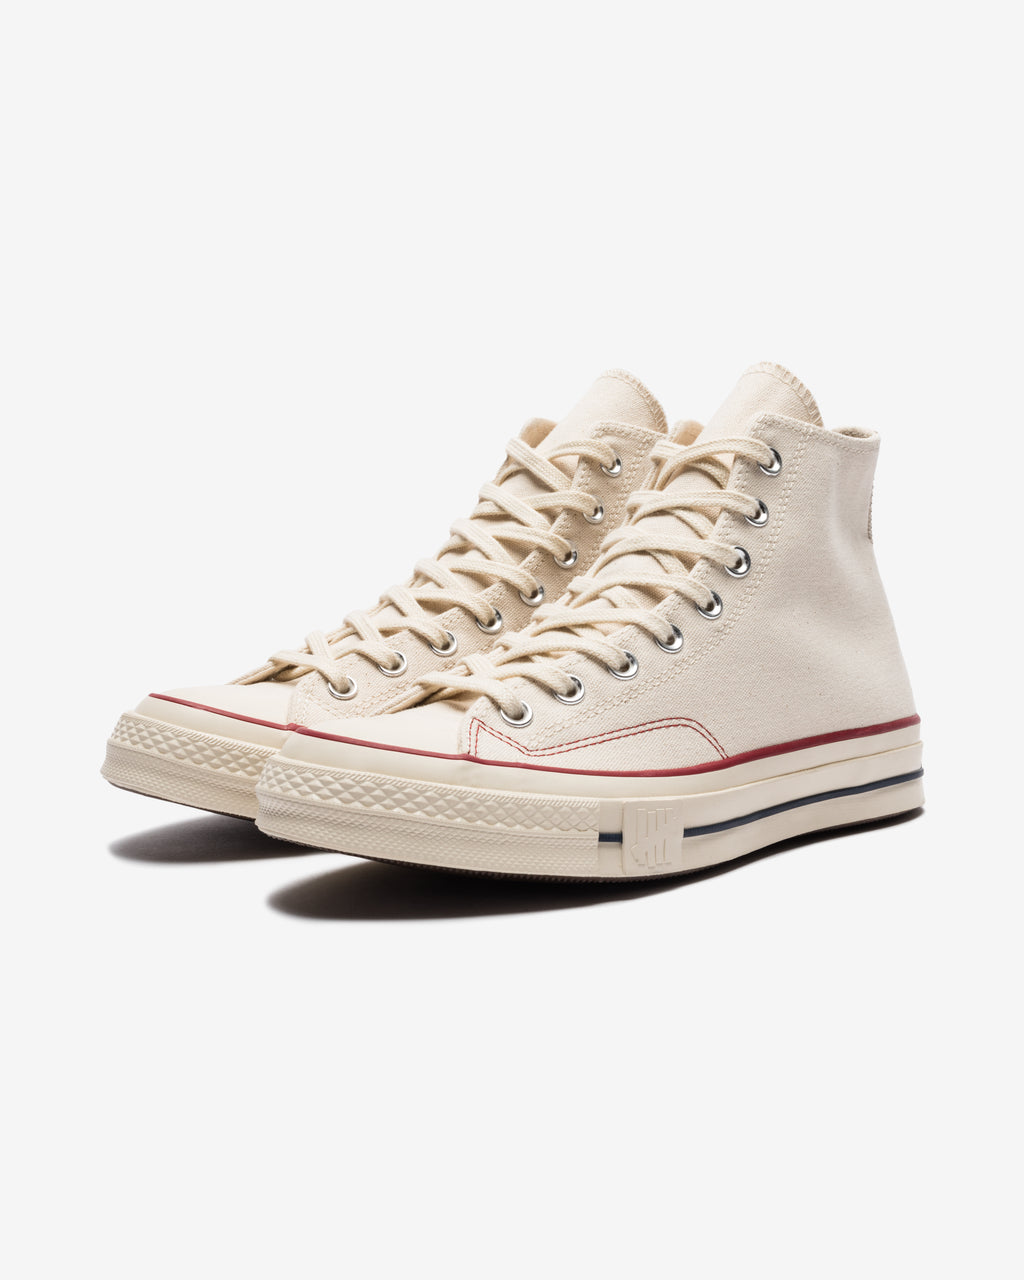 CONVERSE X UNDEFEATED CHUCK 70 HI - NATURAL/ FIERYRED